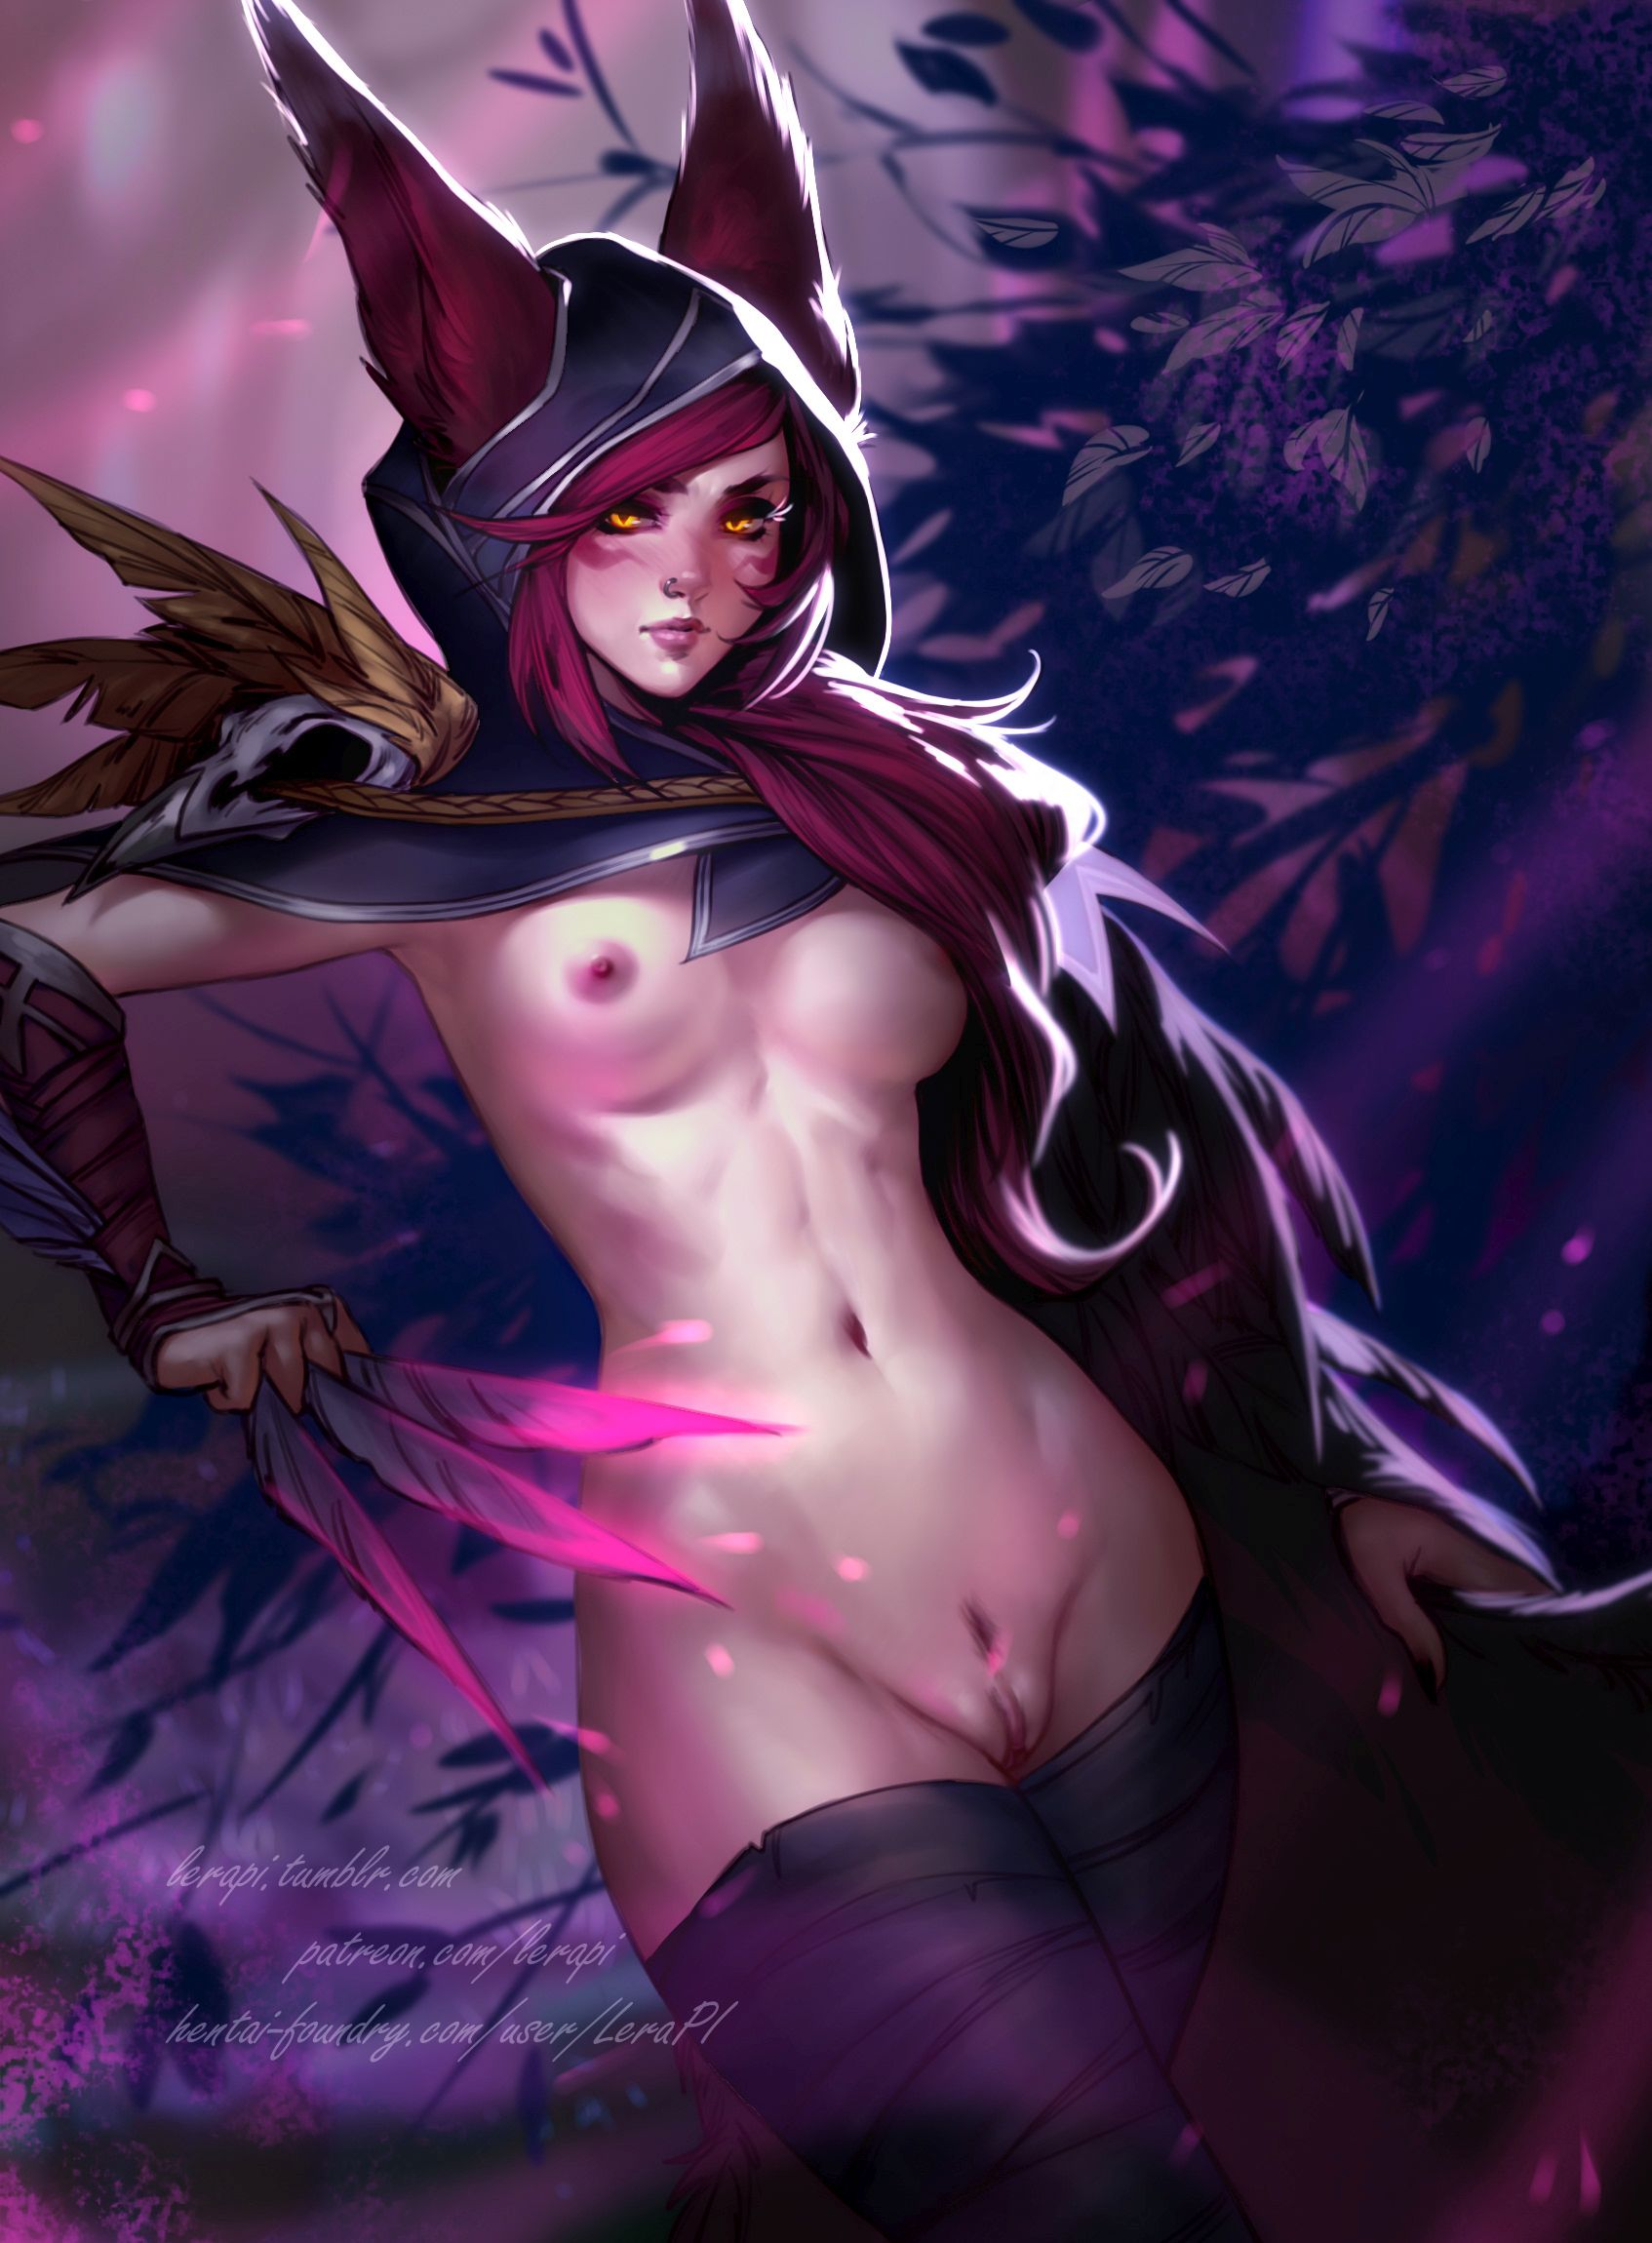 Thirty Hentai Pics Of Xayah From League Of Legends